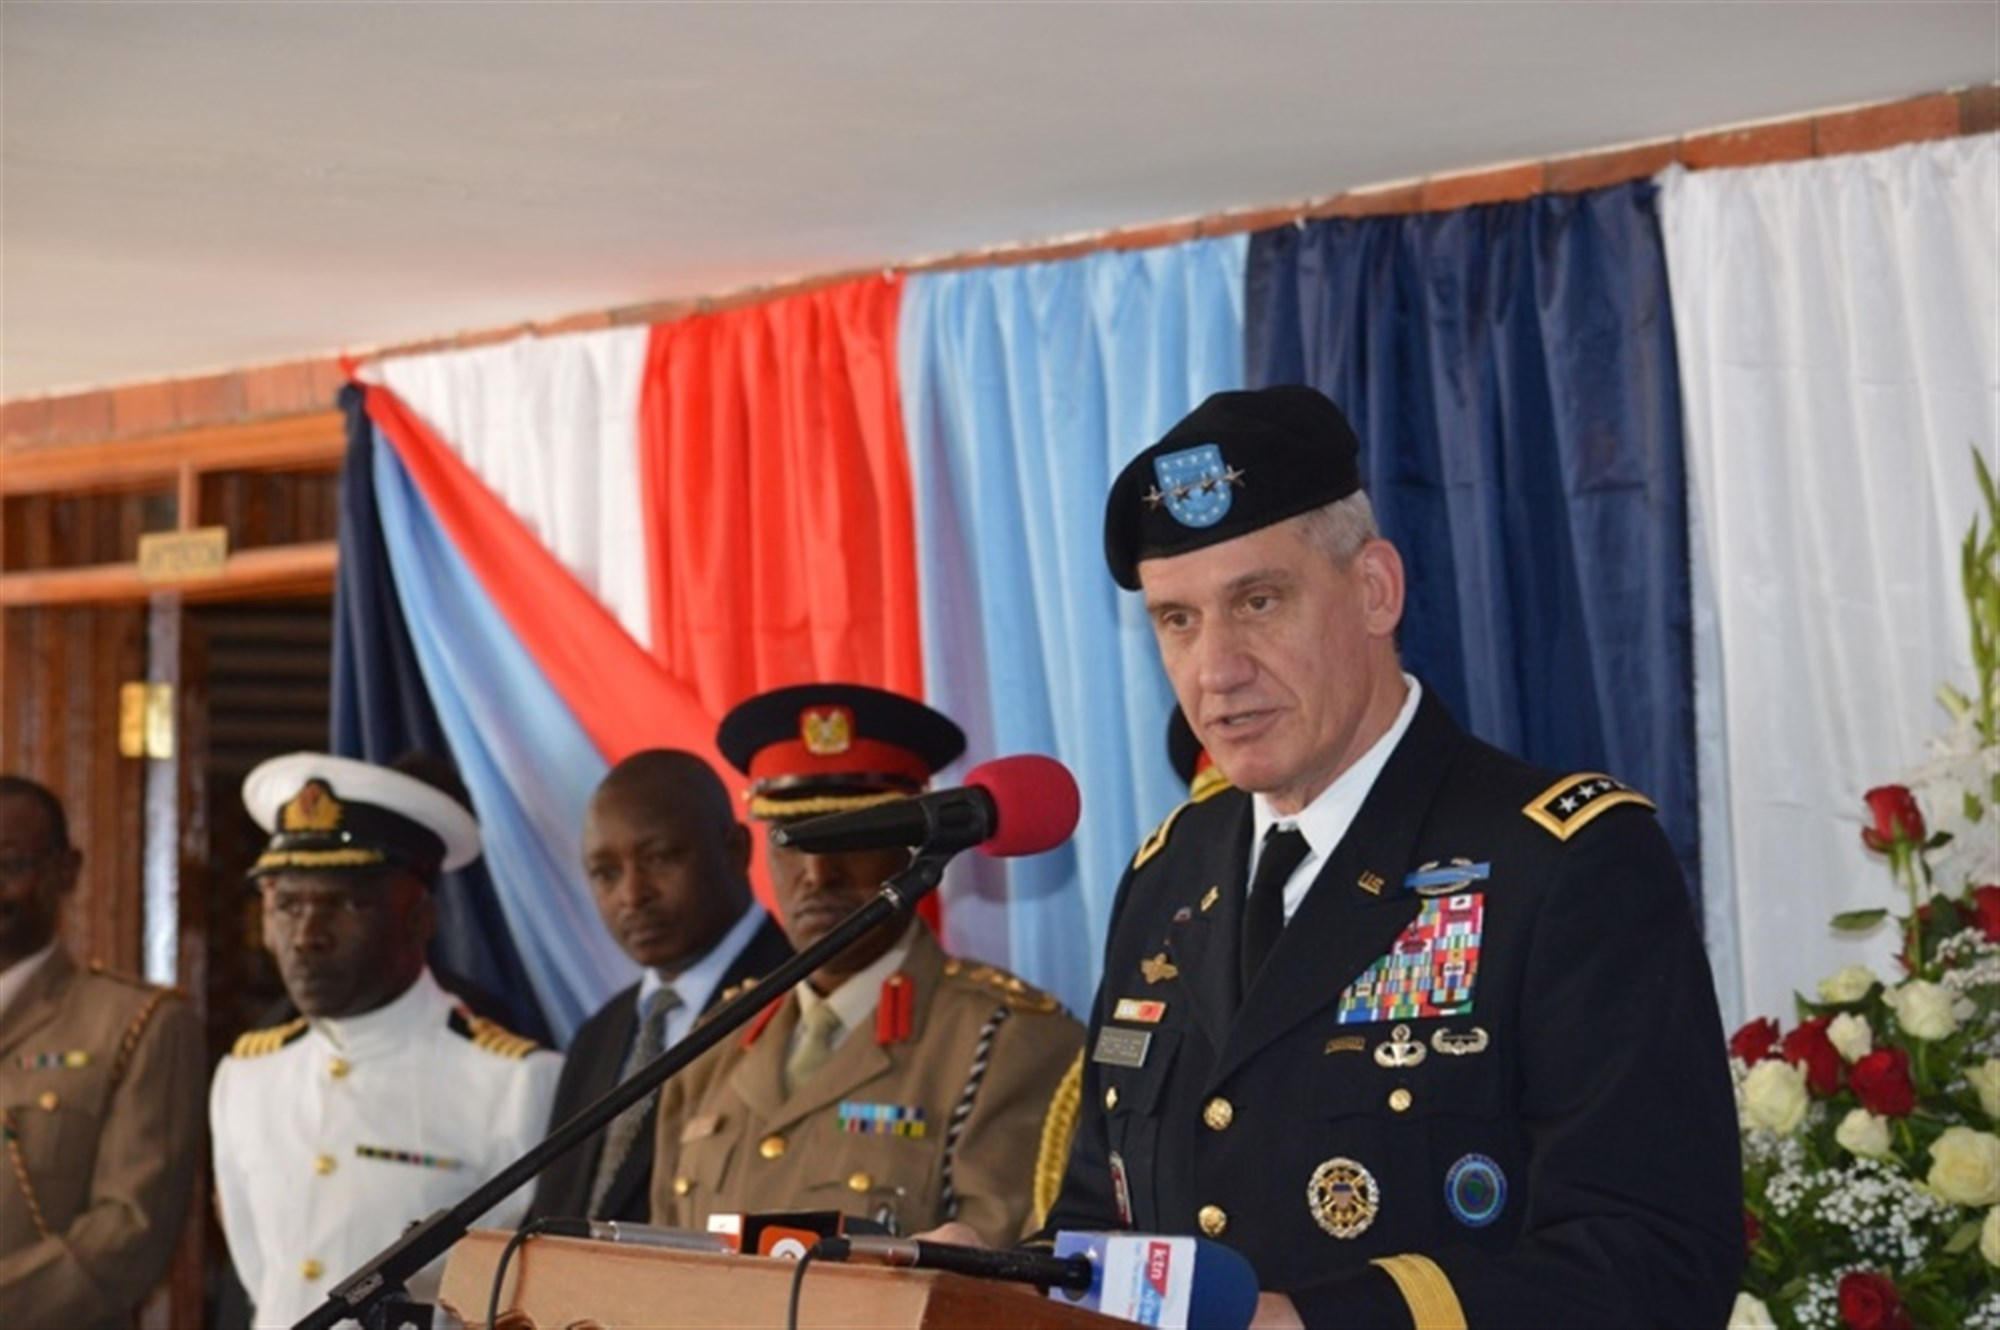 Gen. David Rodriguez, commander, U.S. Africa Command, delivers remarks during the State Partnership Program signing ceremony Oct. 1, 2015 between the Massachusetts National Guard and the Republic of Kenya.